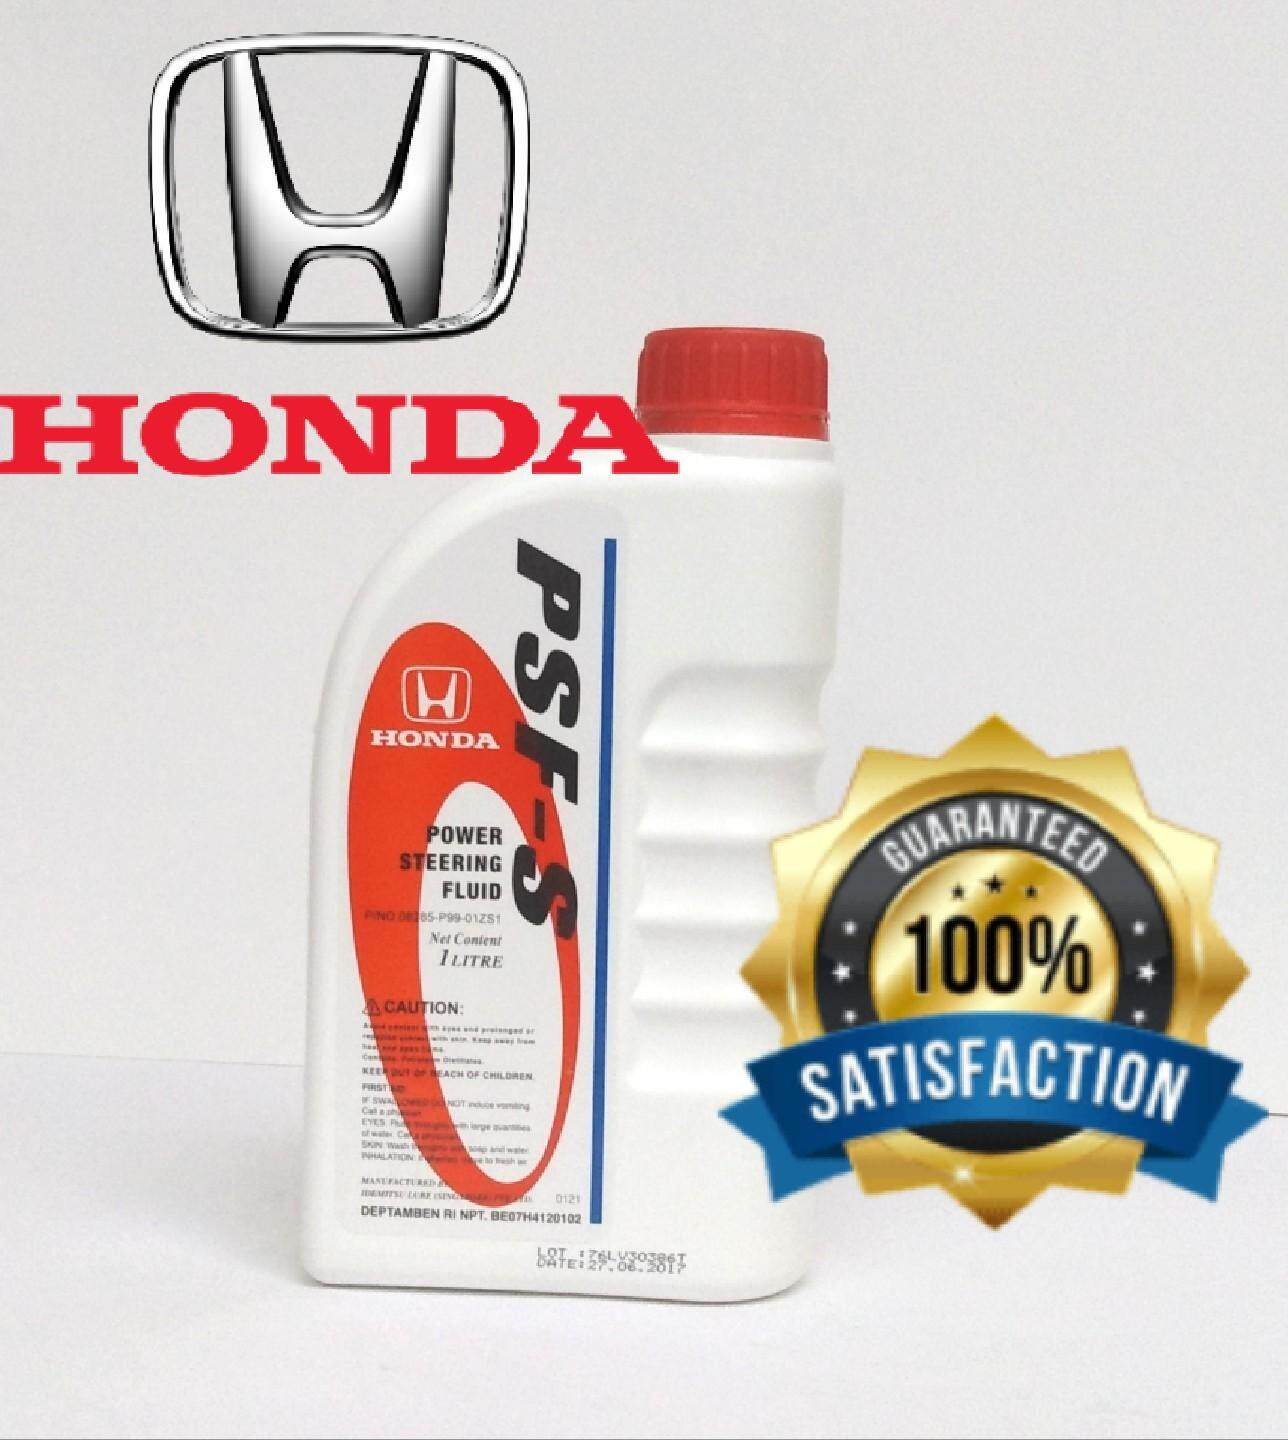 Honda Power Stering Fluid 1L